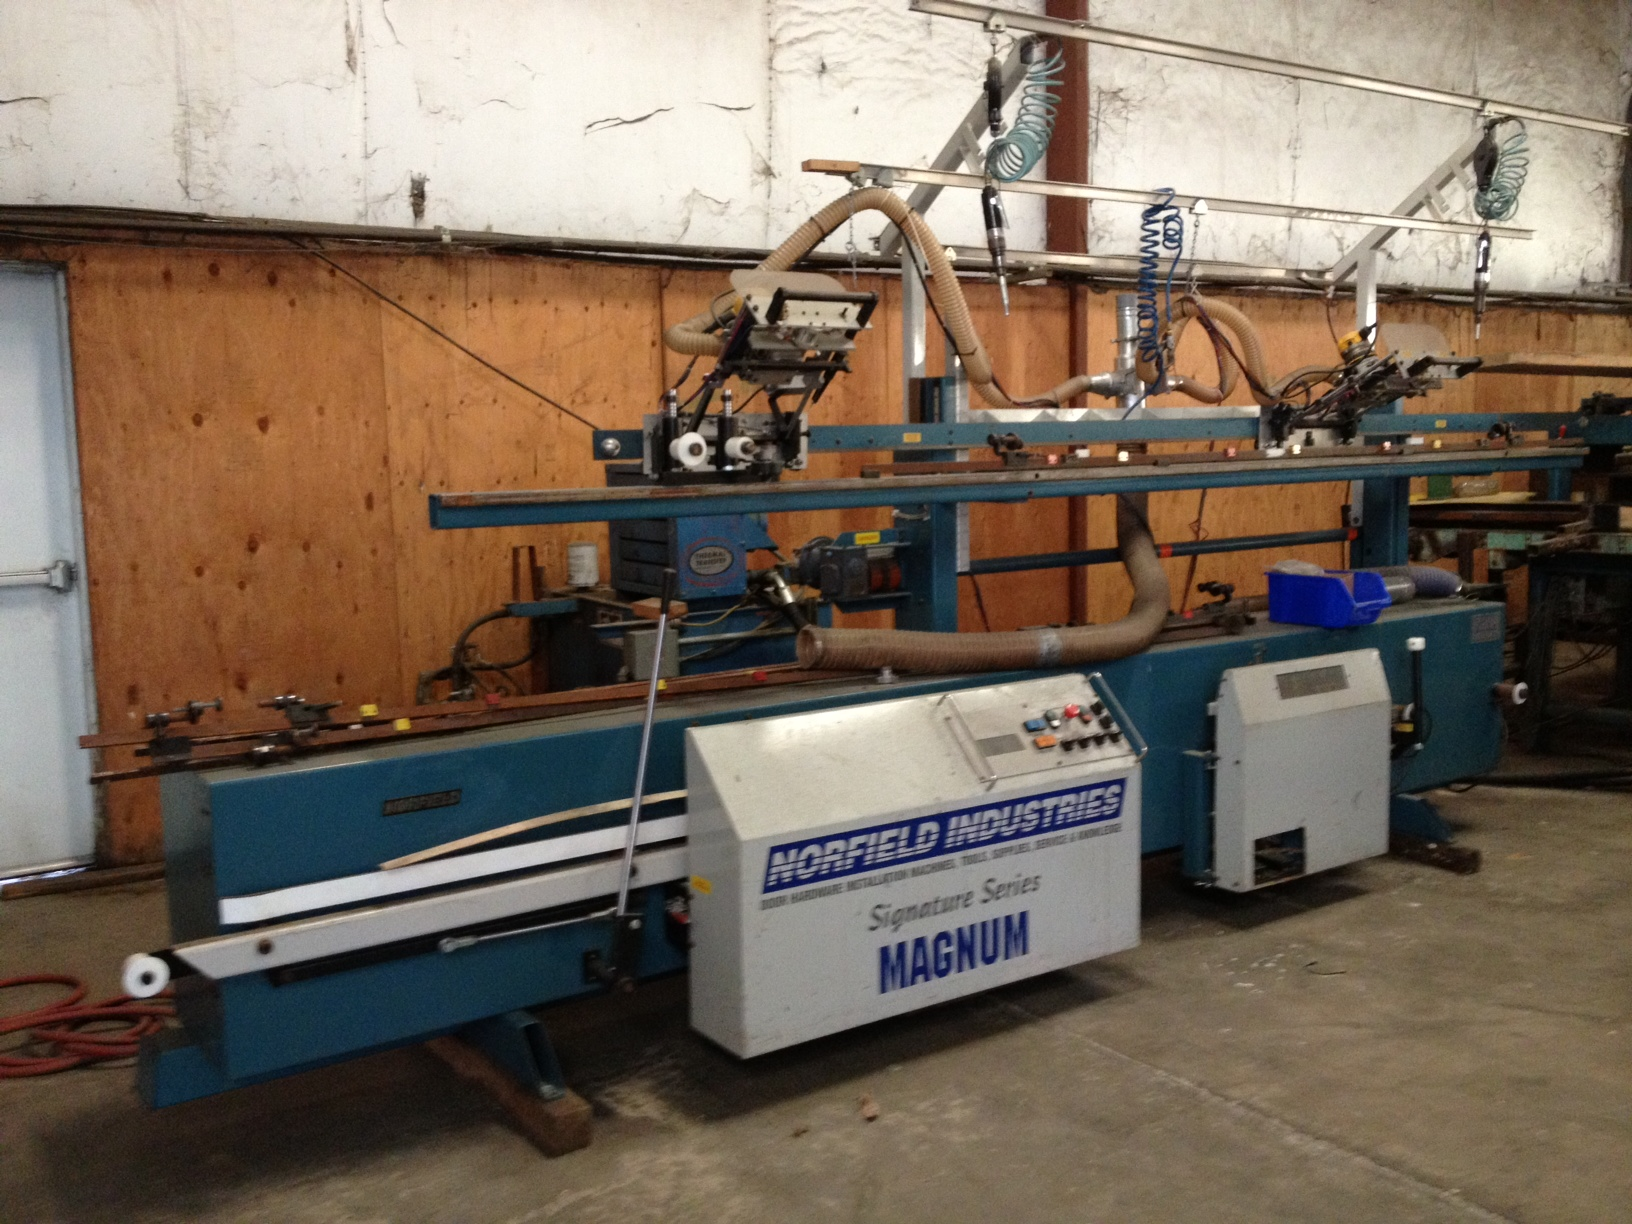 NORFIELD SIGNATURE MAGNUM DOOR MACHINE